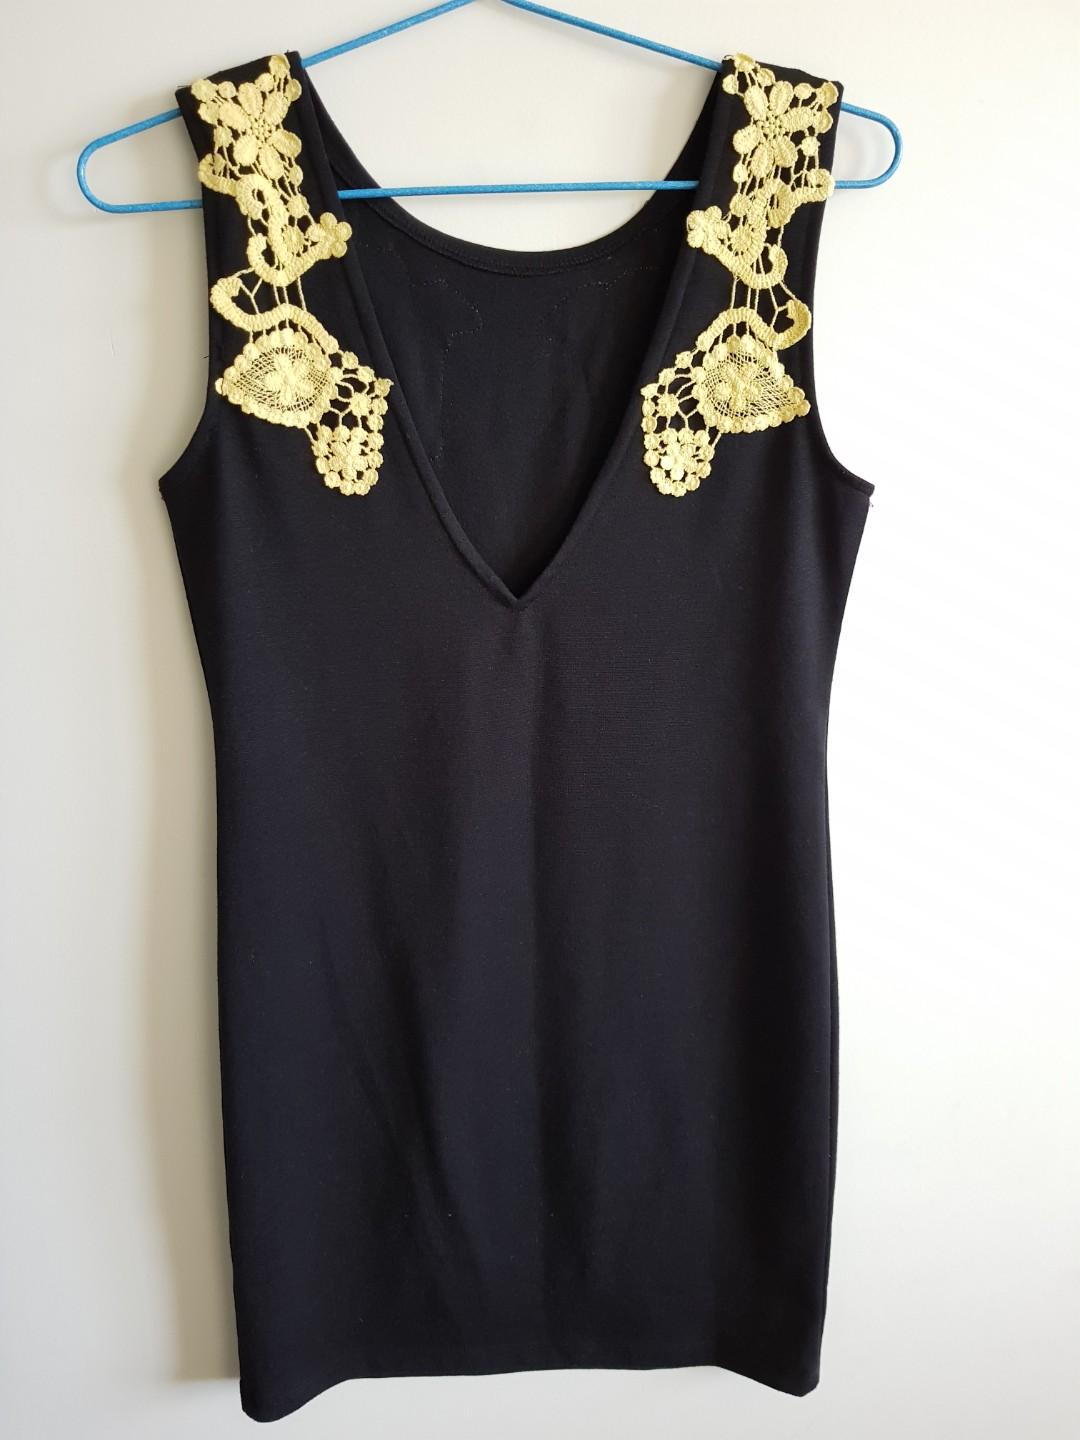 Beautiful black dress with yellow lace details $15